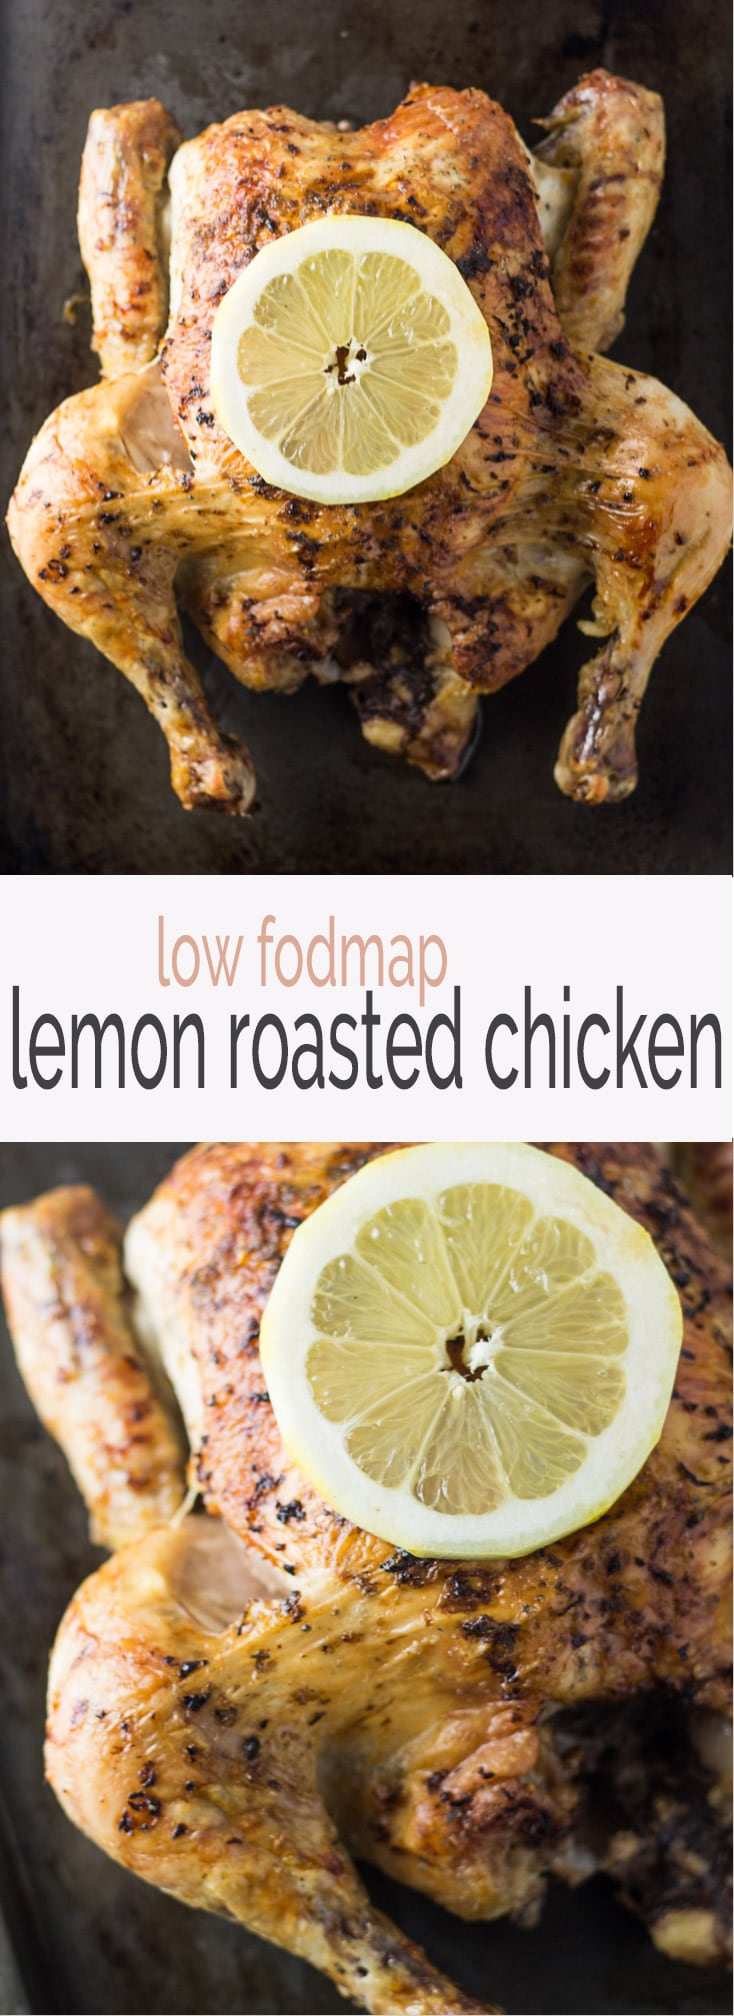 This easy Low Fodmap Lemon Roasted Chicken is the perfect cook once, eat twice (or more) dish! Save the bones to make your own Low Fodmap Chicken Broth. It's also gluten free, paleo and whole 30 friendly!